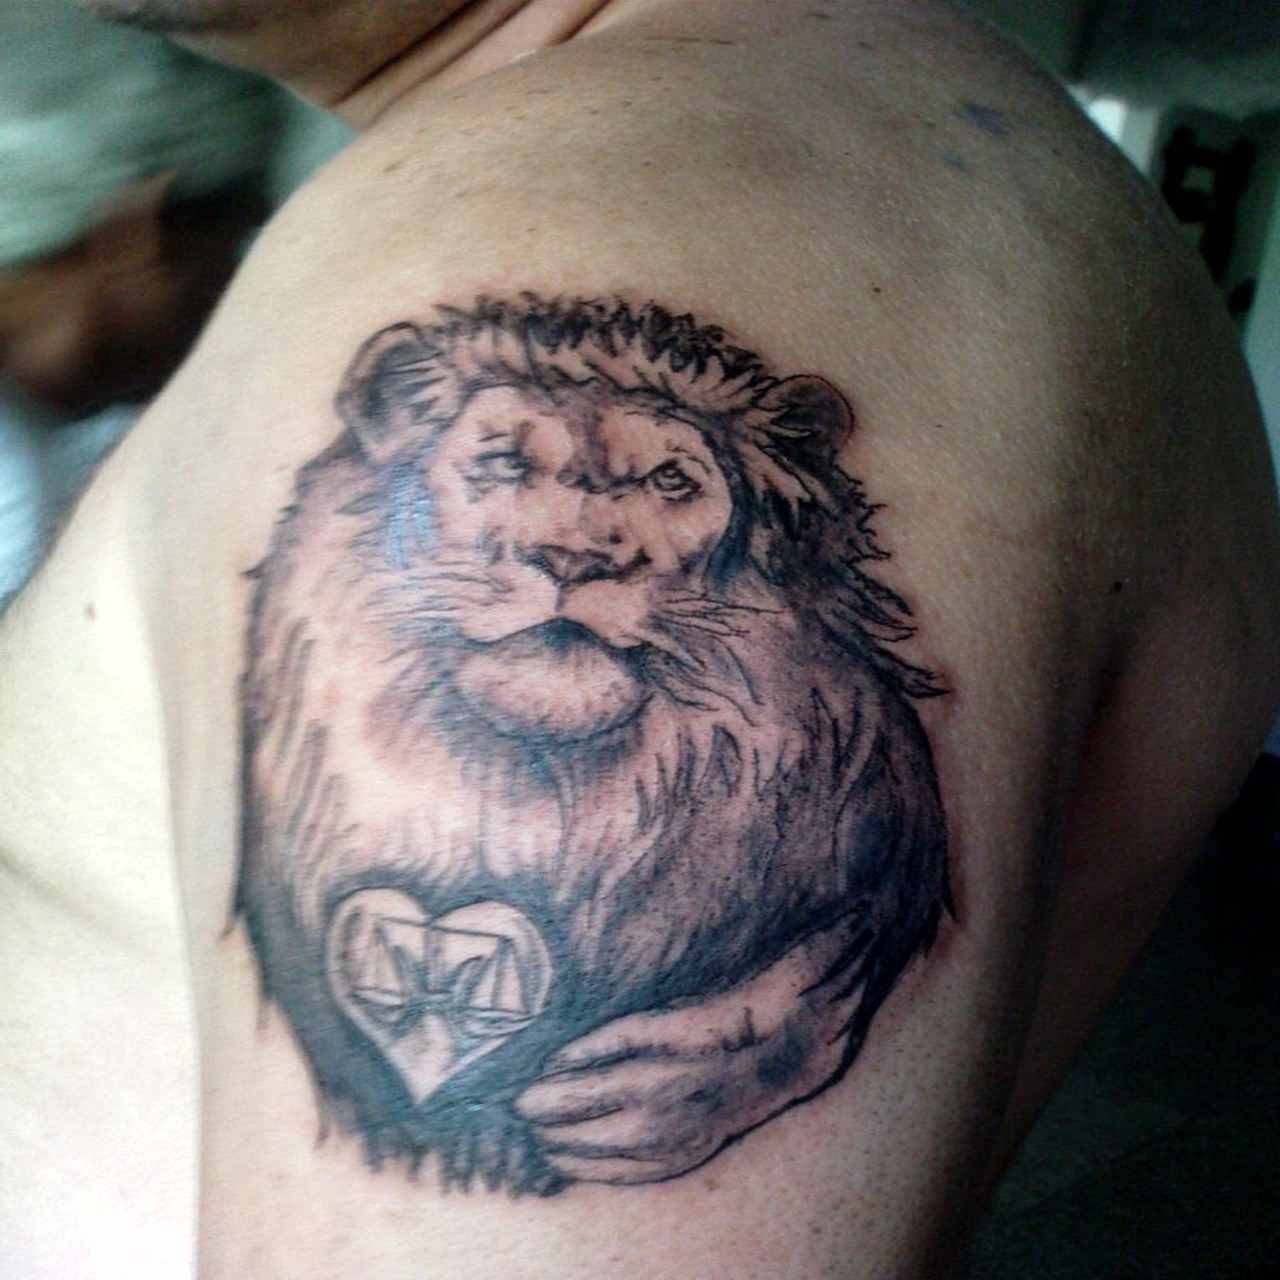 Lion tattoo shoulder girl - photo#8